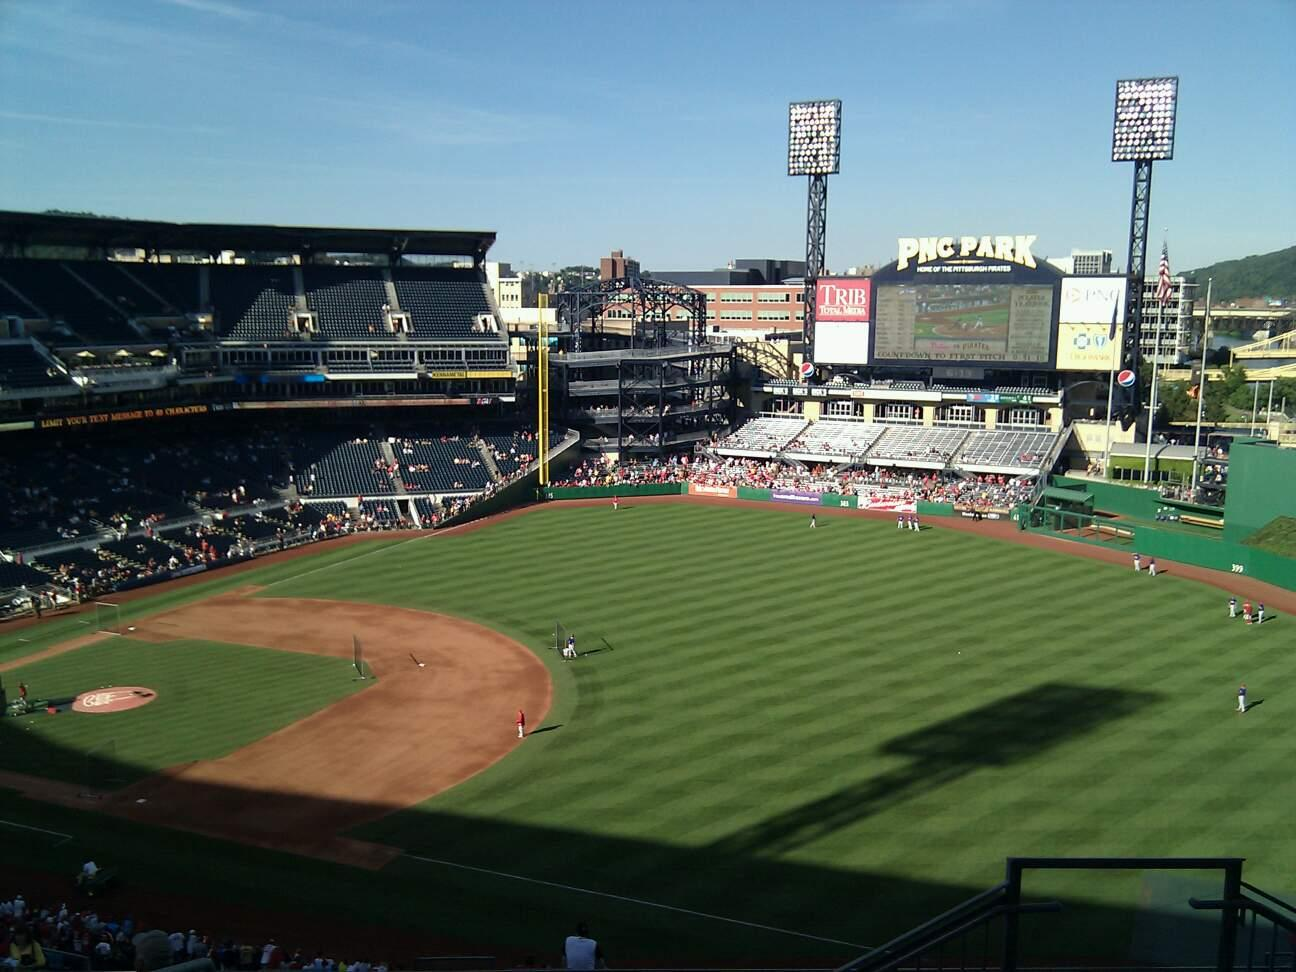 PNC Park Section 303 Row m Seat 4